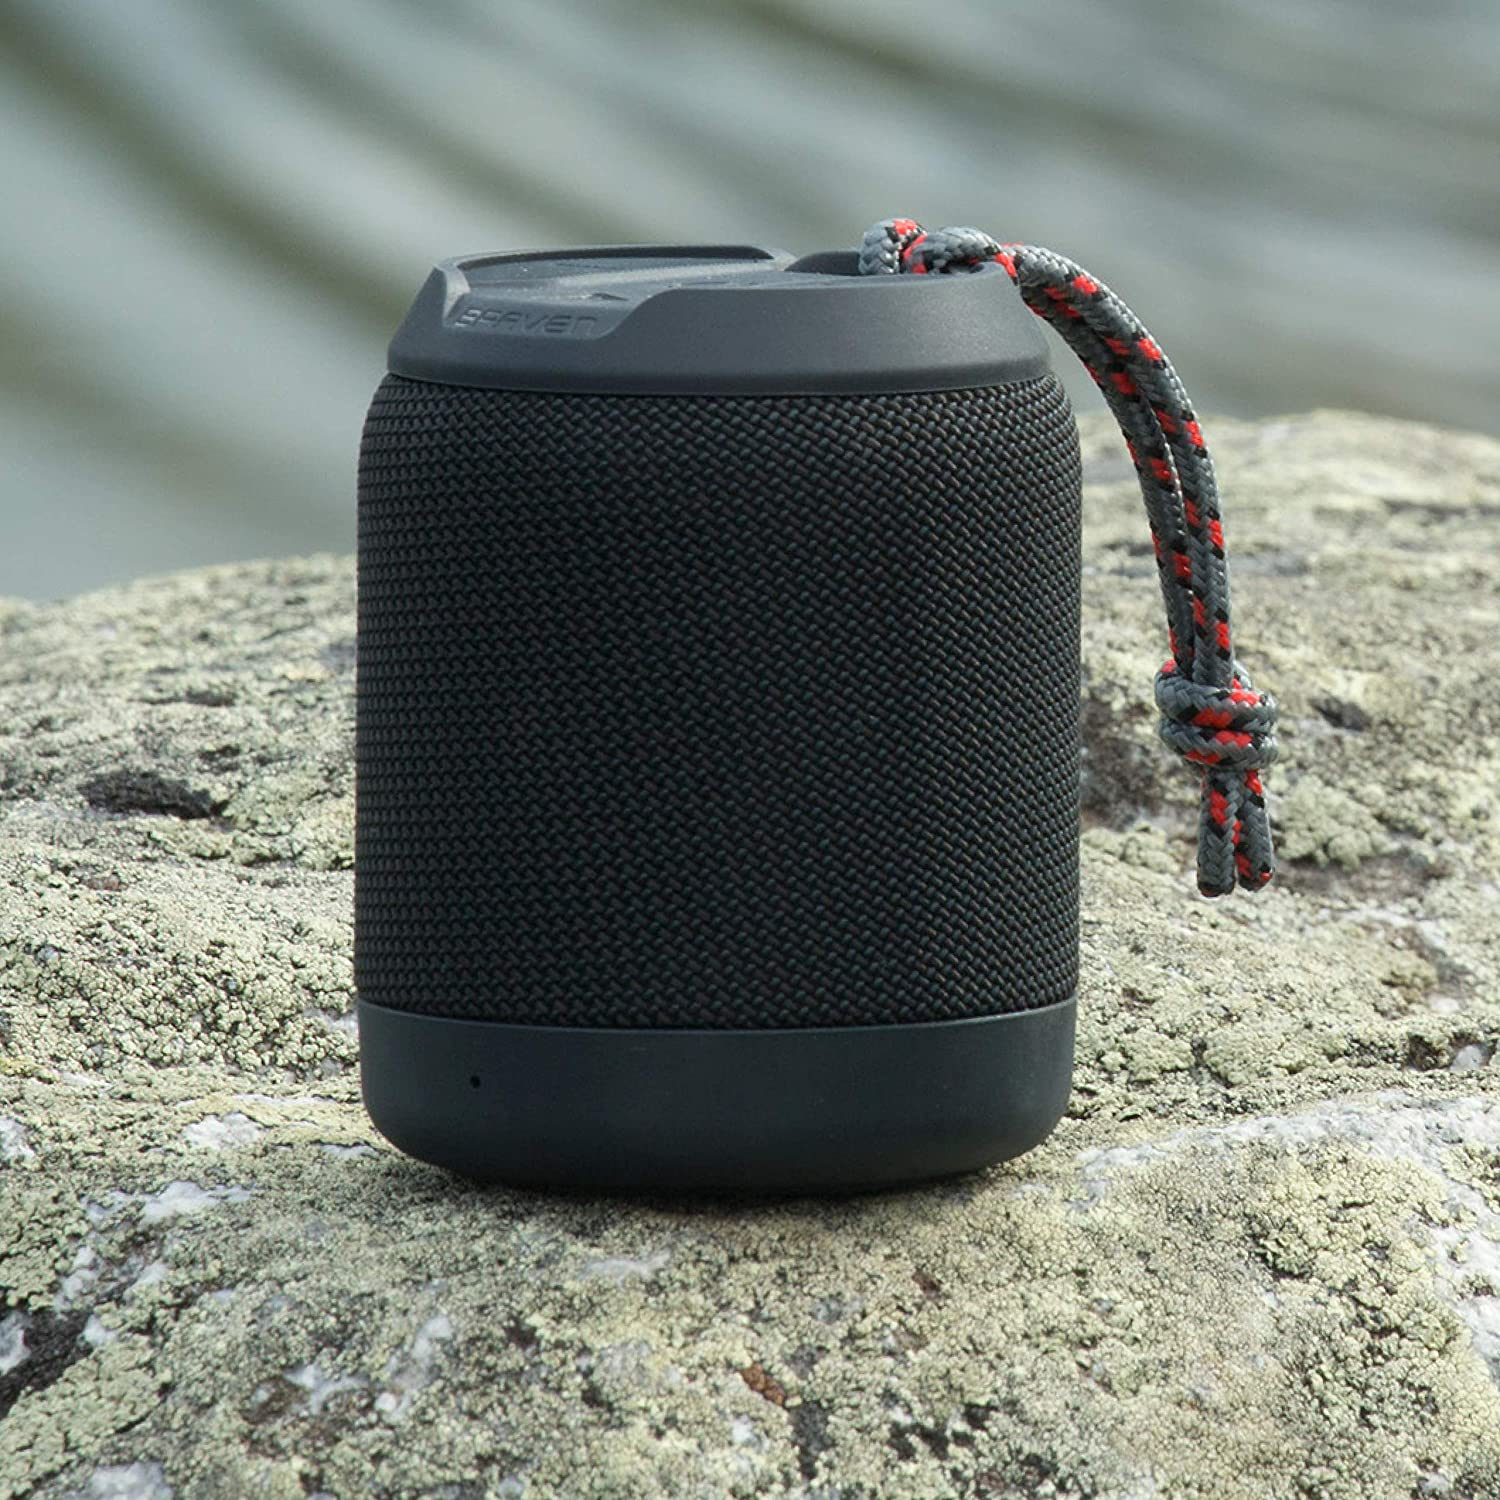 The Best Speakers For Small Rooms 2021 Libratone Klipsch Braven Rolling Stone